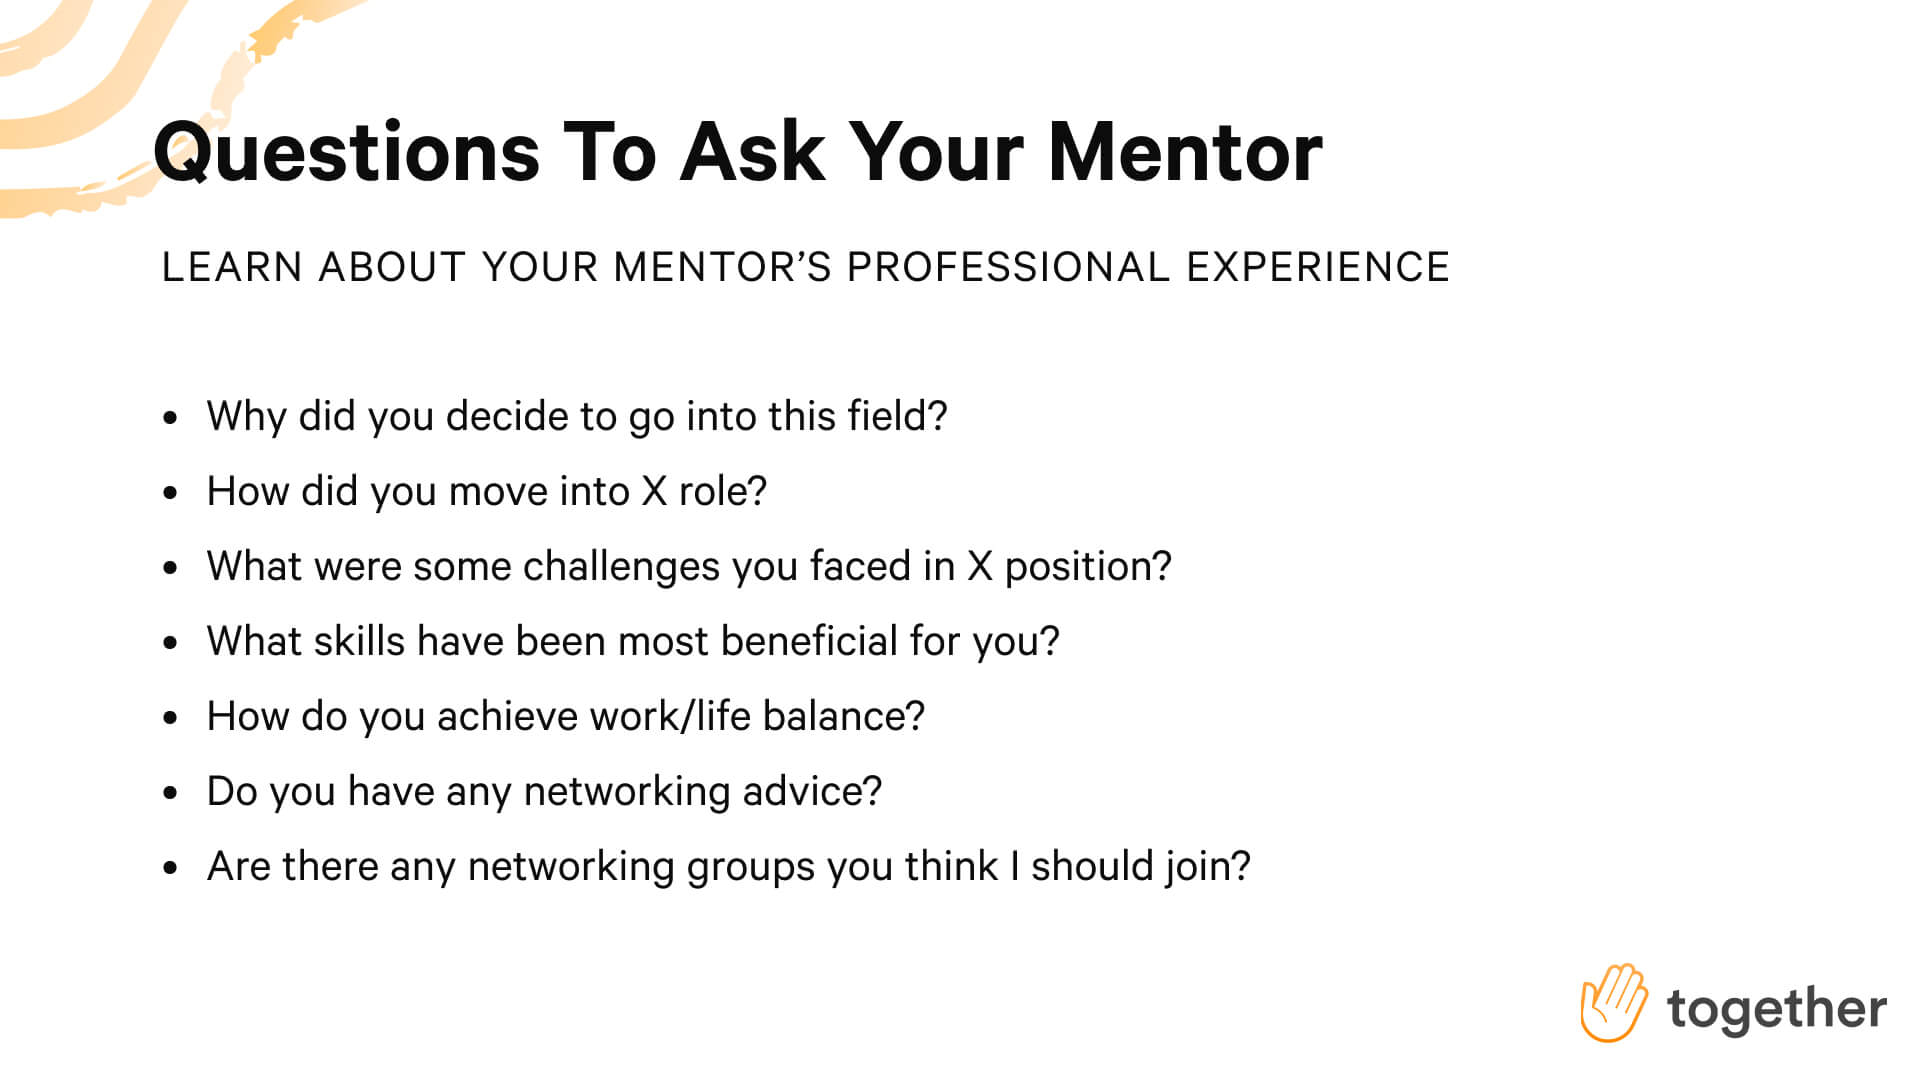 Questions to ask your mentor to learn about their professional experience